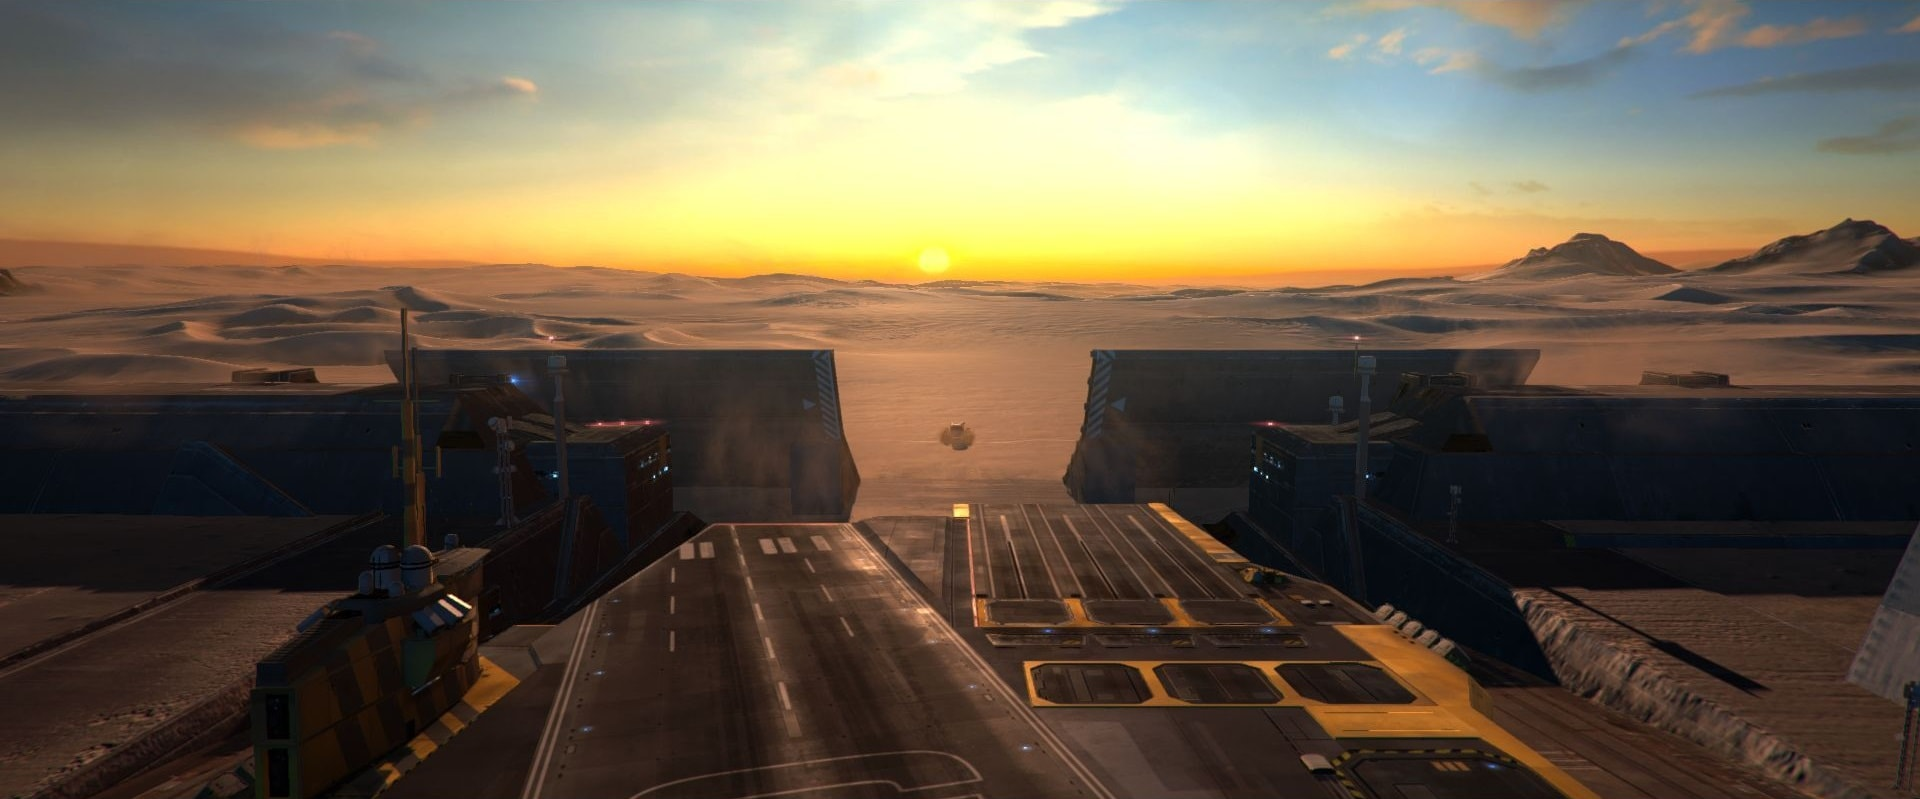 Homeworld: Deserts of Kharak Wallpapers hd